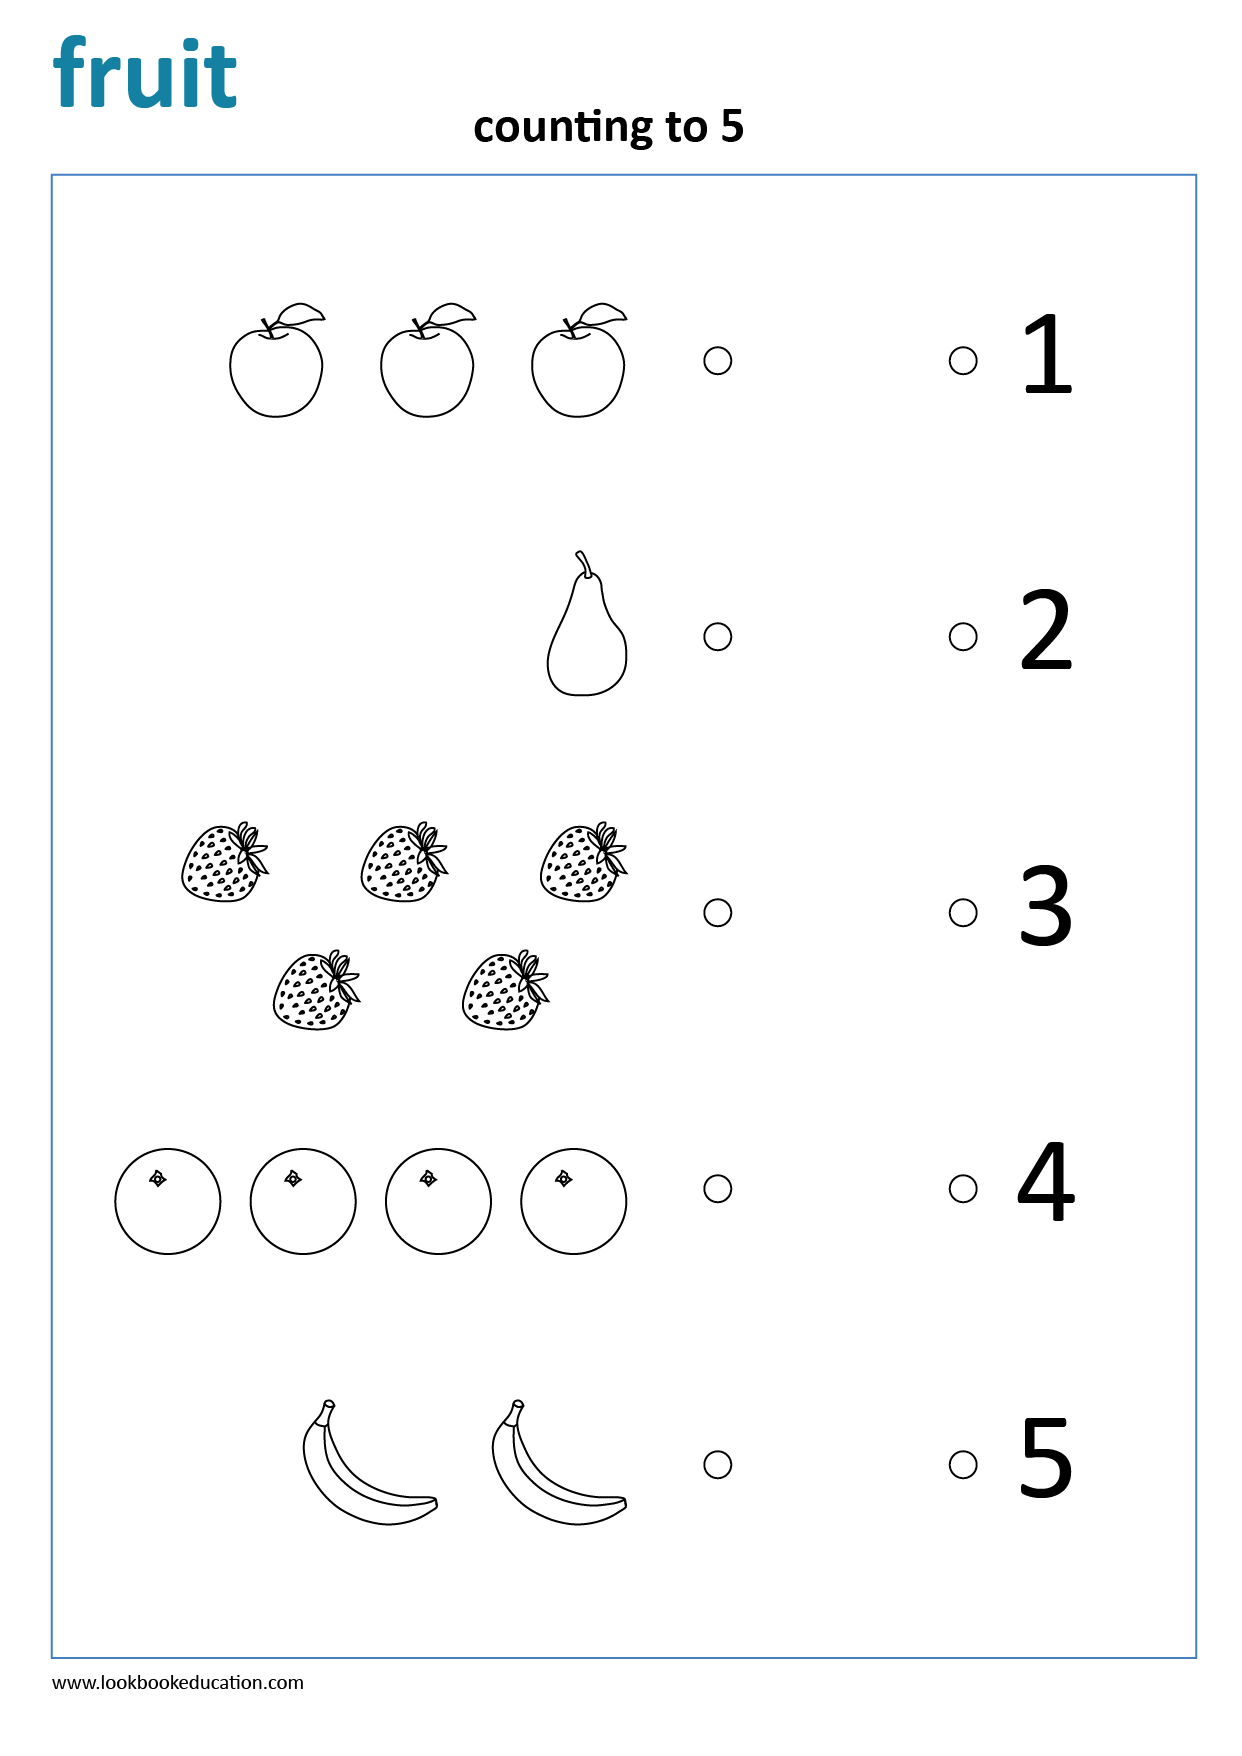 Worksheet Count And Match Fruit In